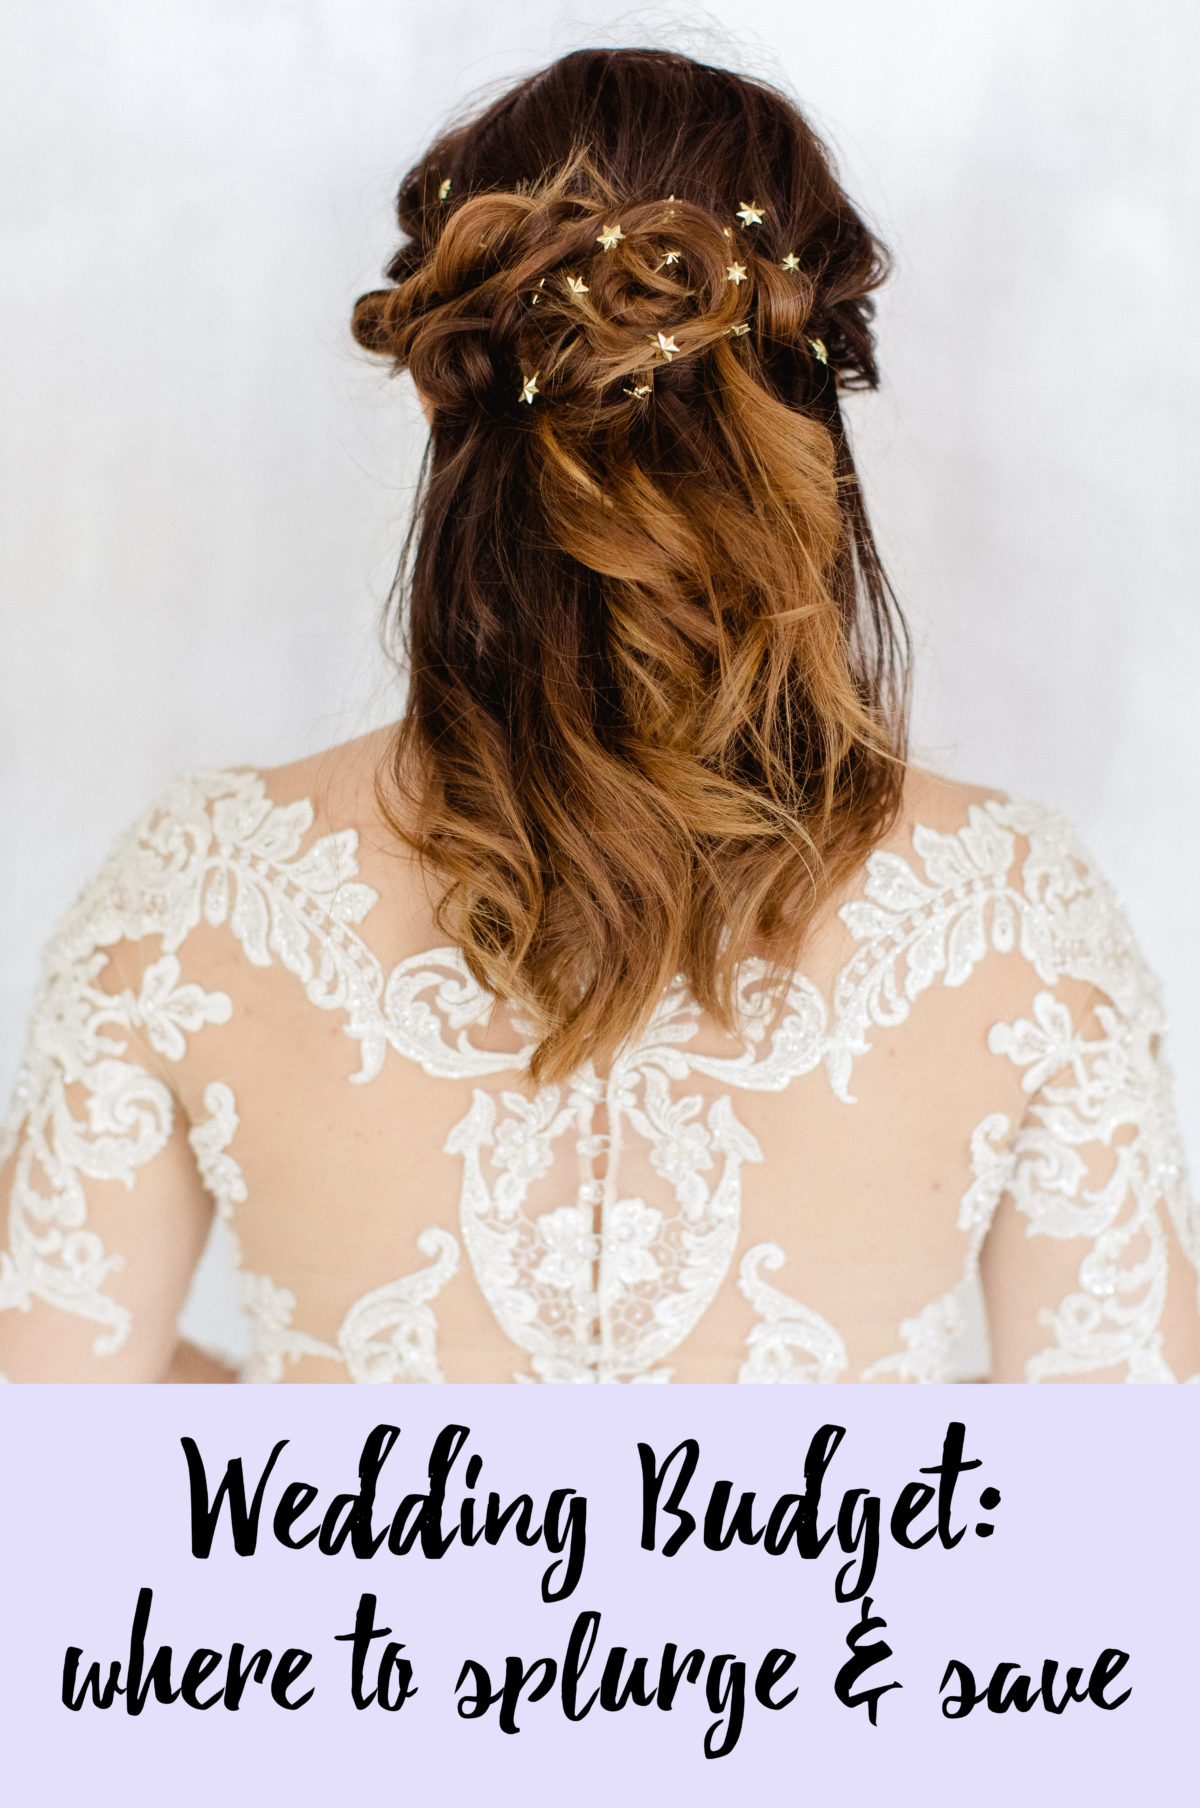 Ways To Save Money in Your Wedding Budget